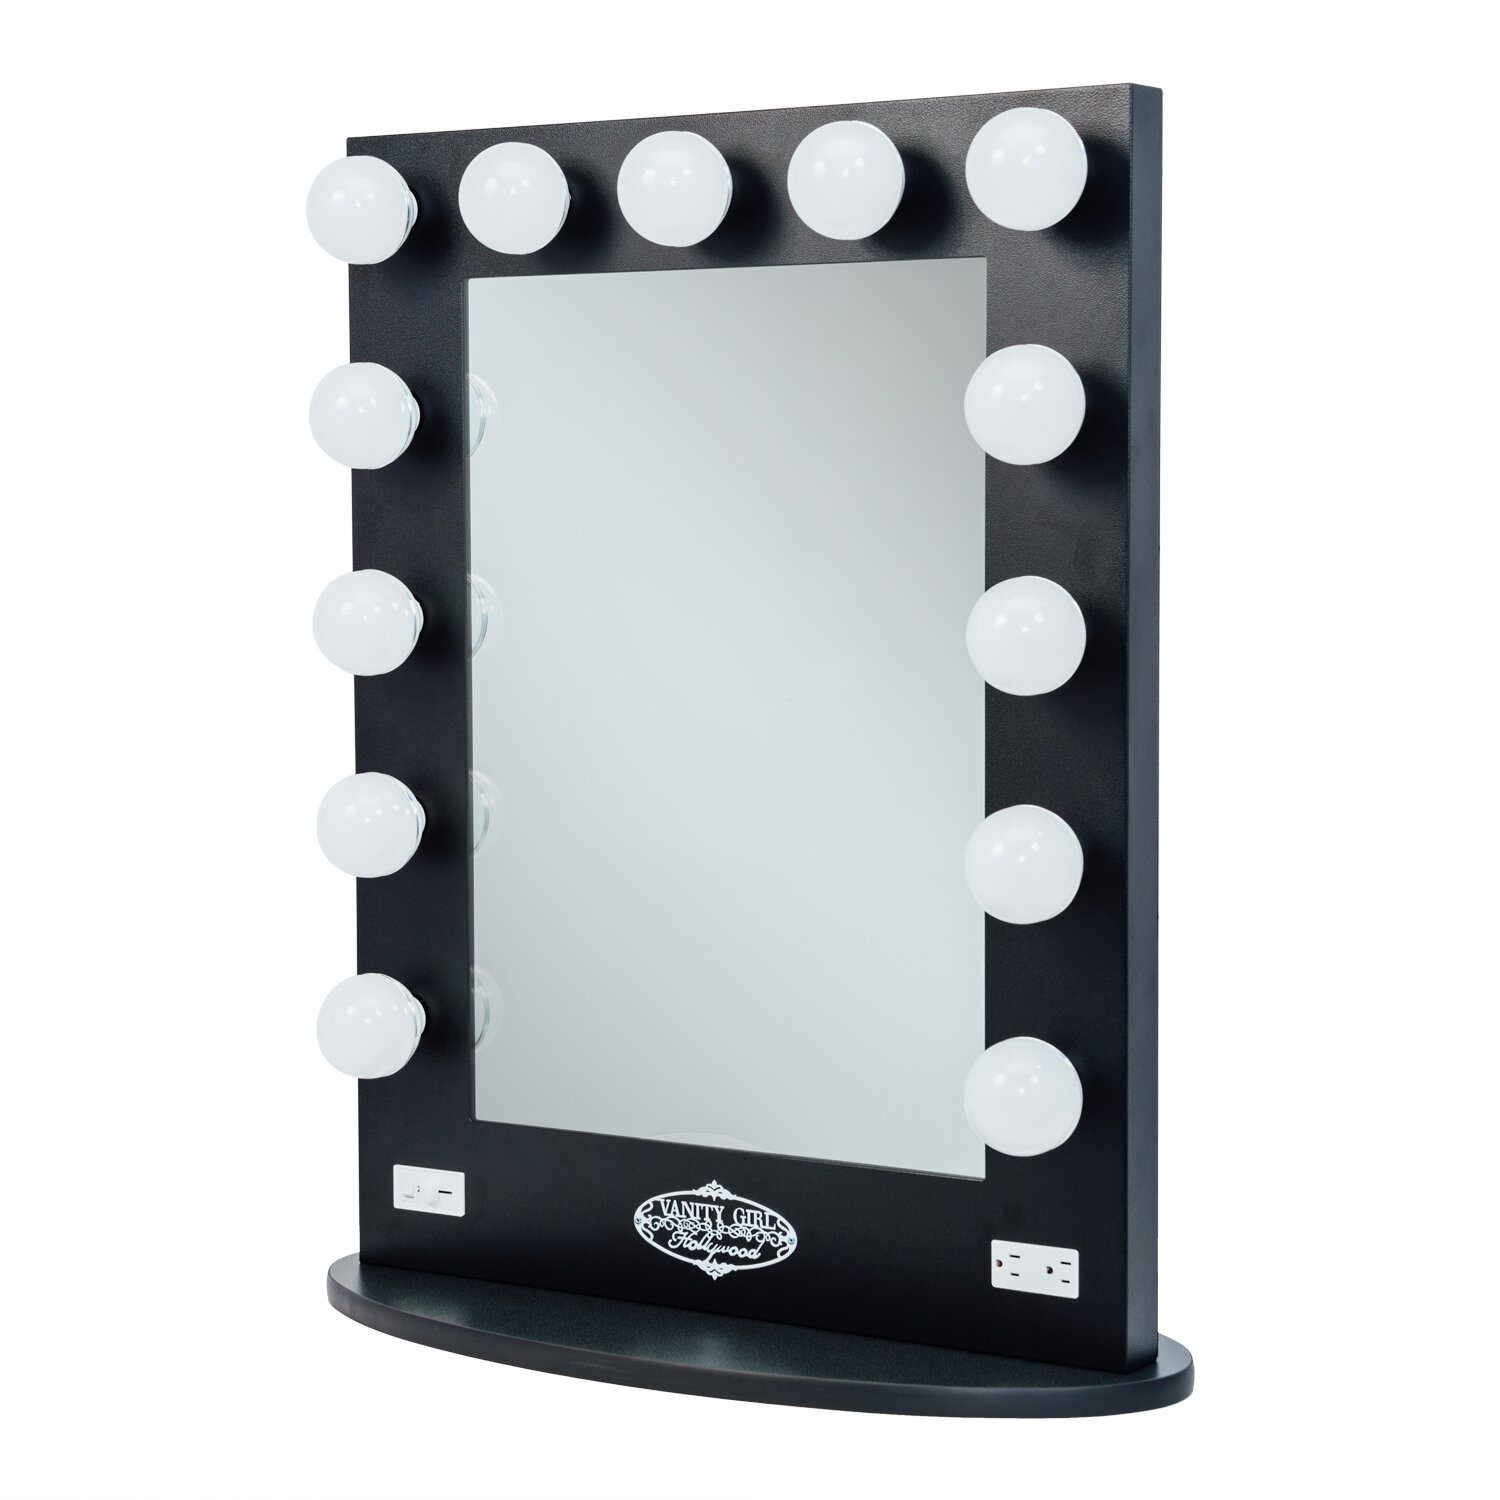 Vanity Girl Hollywood Light Up Mirror : Vanity Girl Hollywood Broadway Lighted Vanity Mirror & Reviews Wayfair